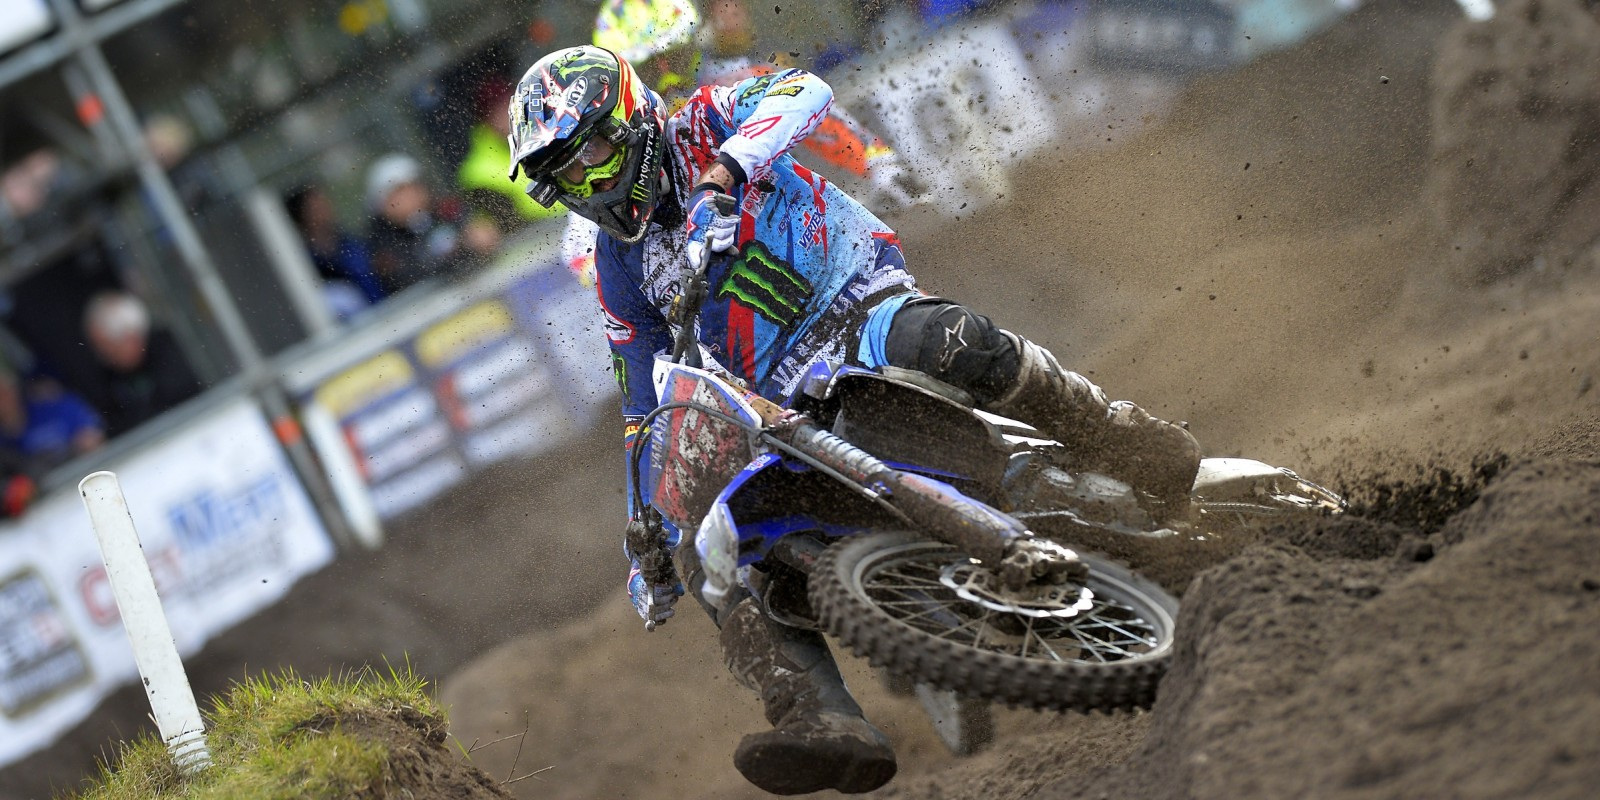 Romain Febvre at the 2016 MXGP of Europe